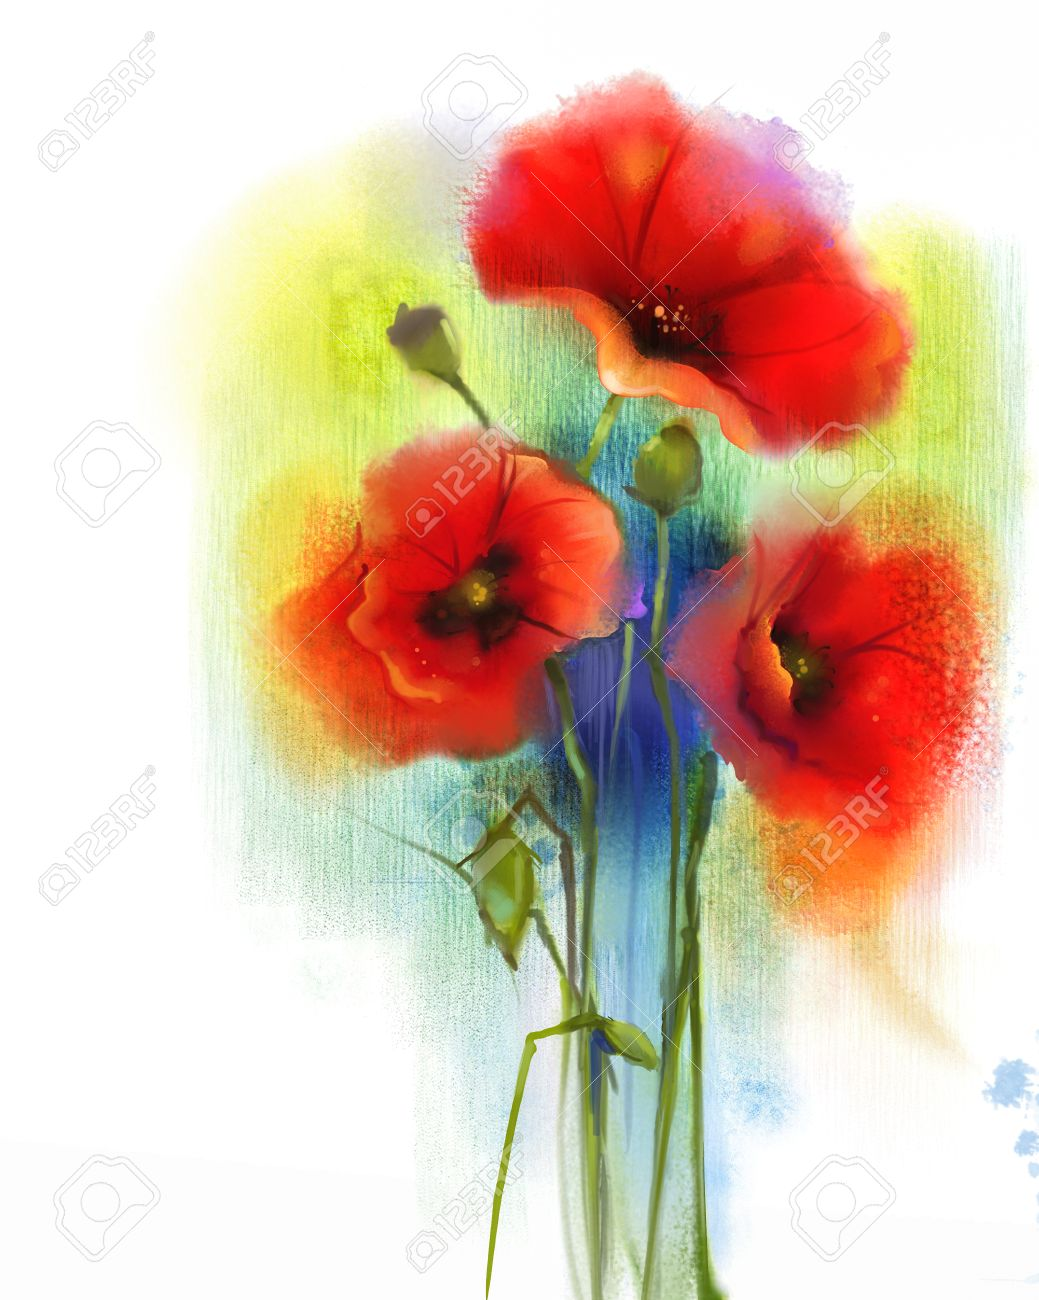 Watercolor Red Poppy Flower Painting Hand Paint Poppies Flowers